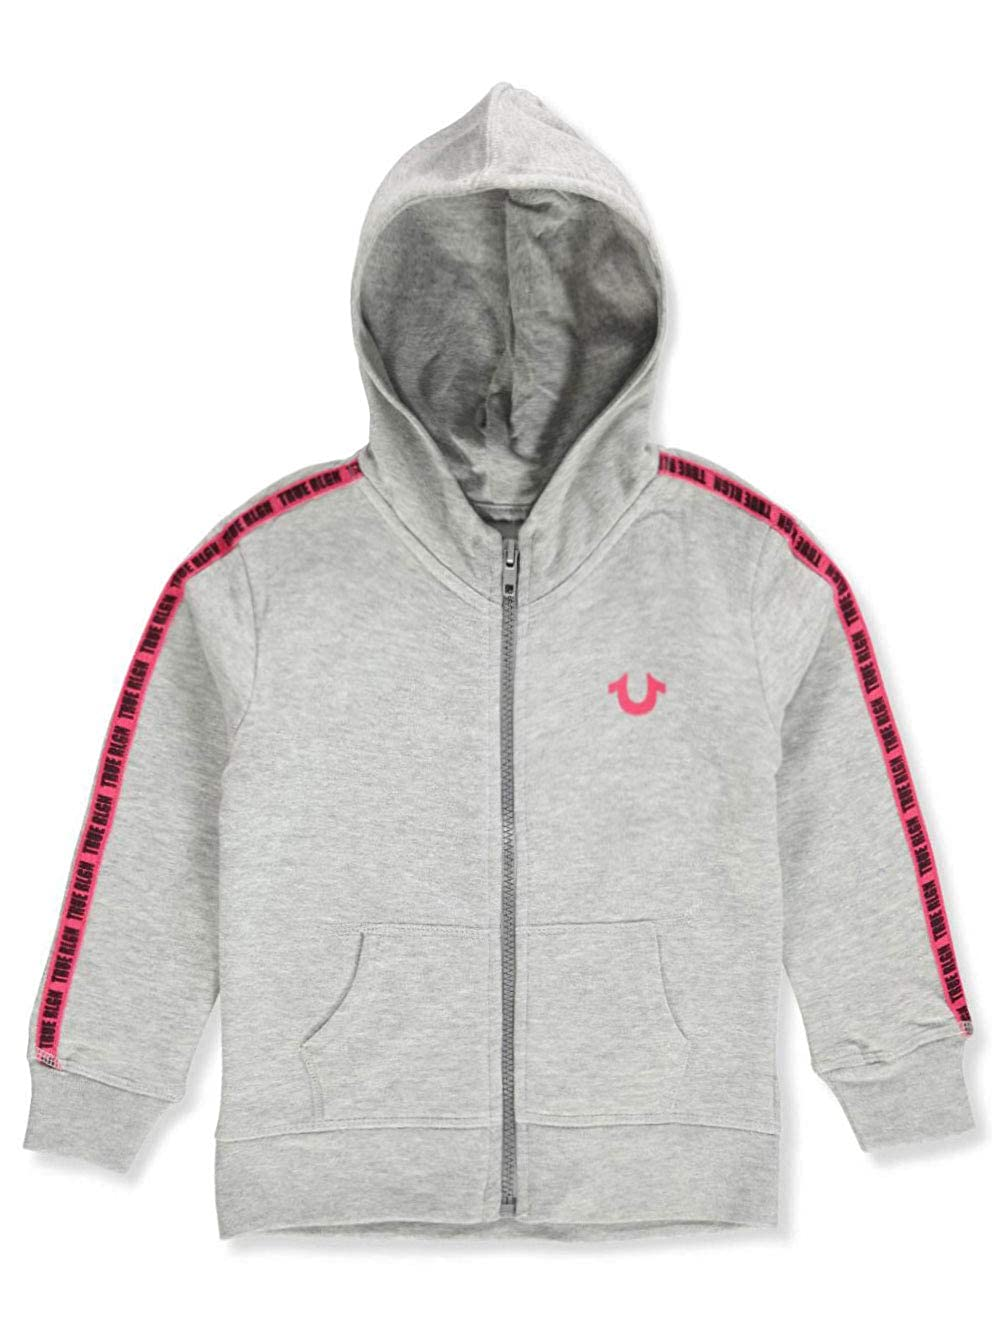 5c674e480 True Religion Girls French Terry Hoodie Hooded Sweatshirt: Amazon.ca:  Clothing & Accessories